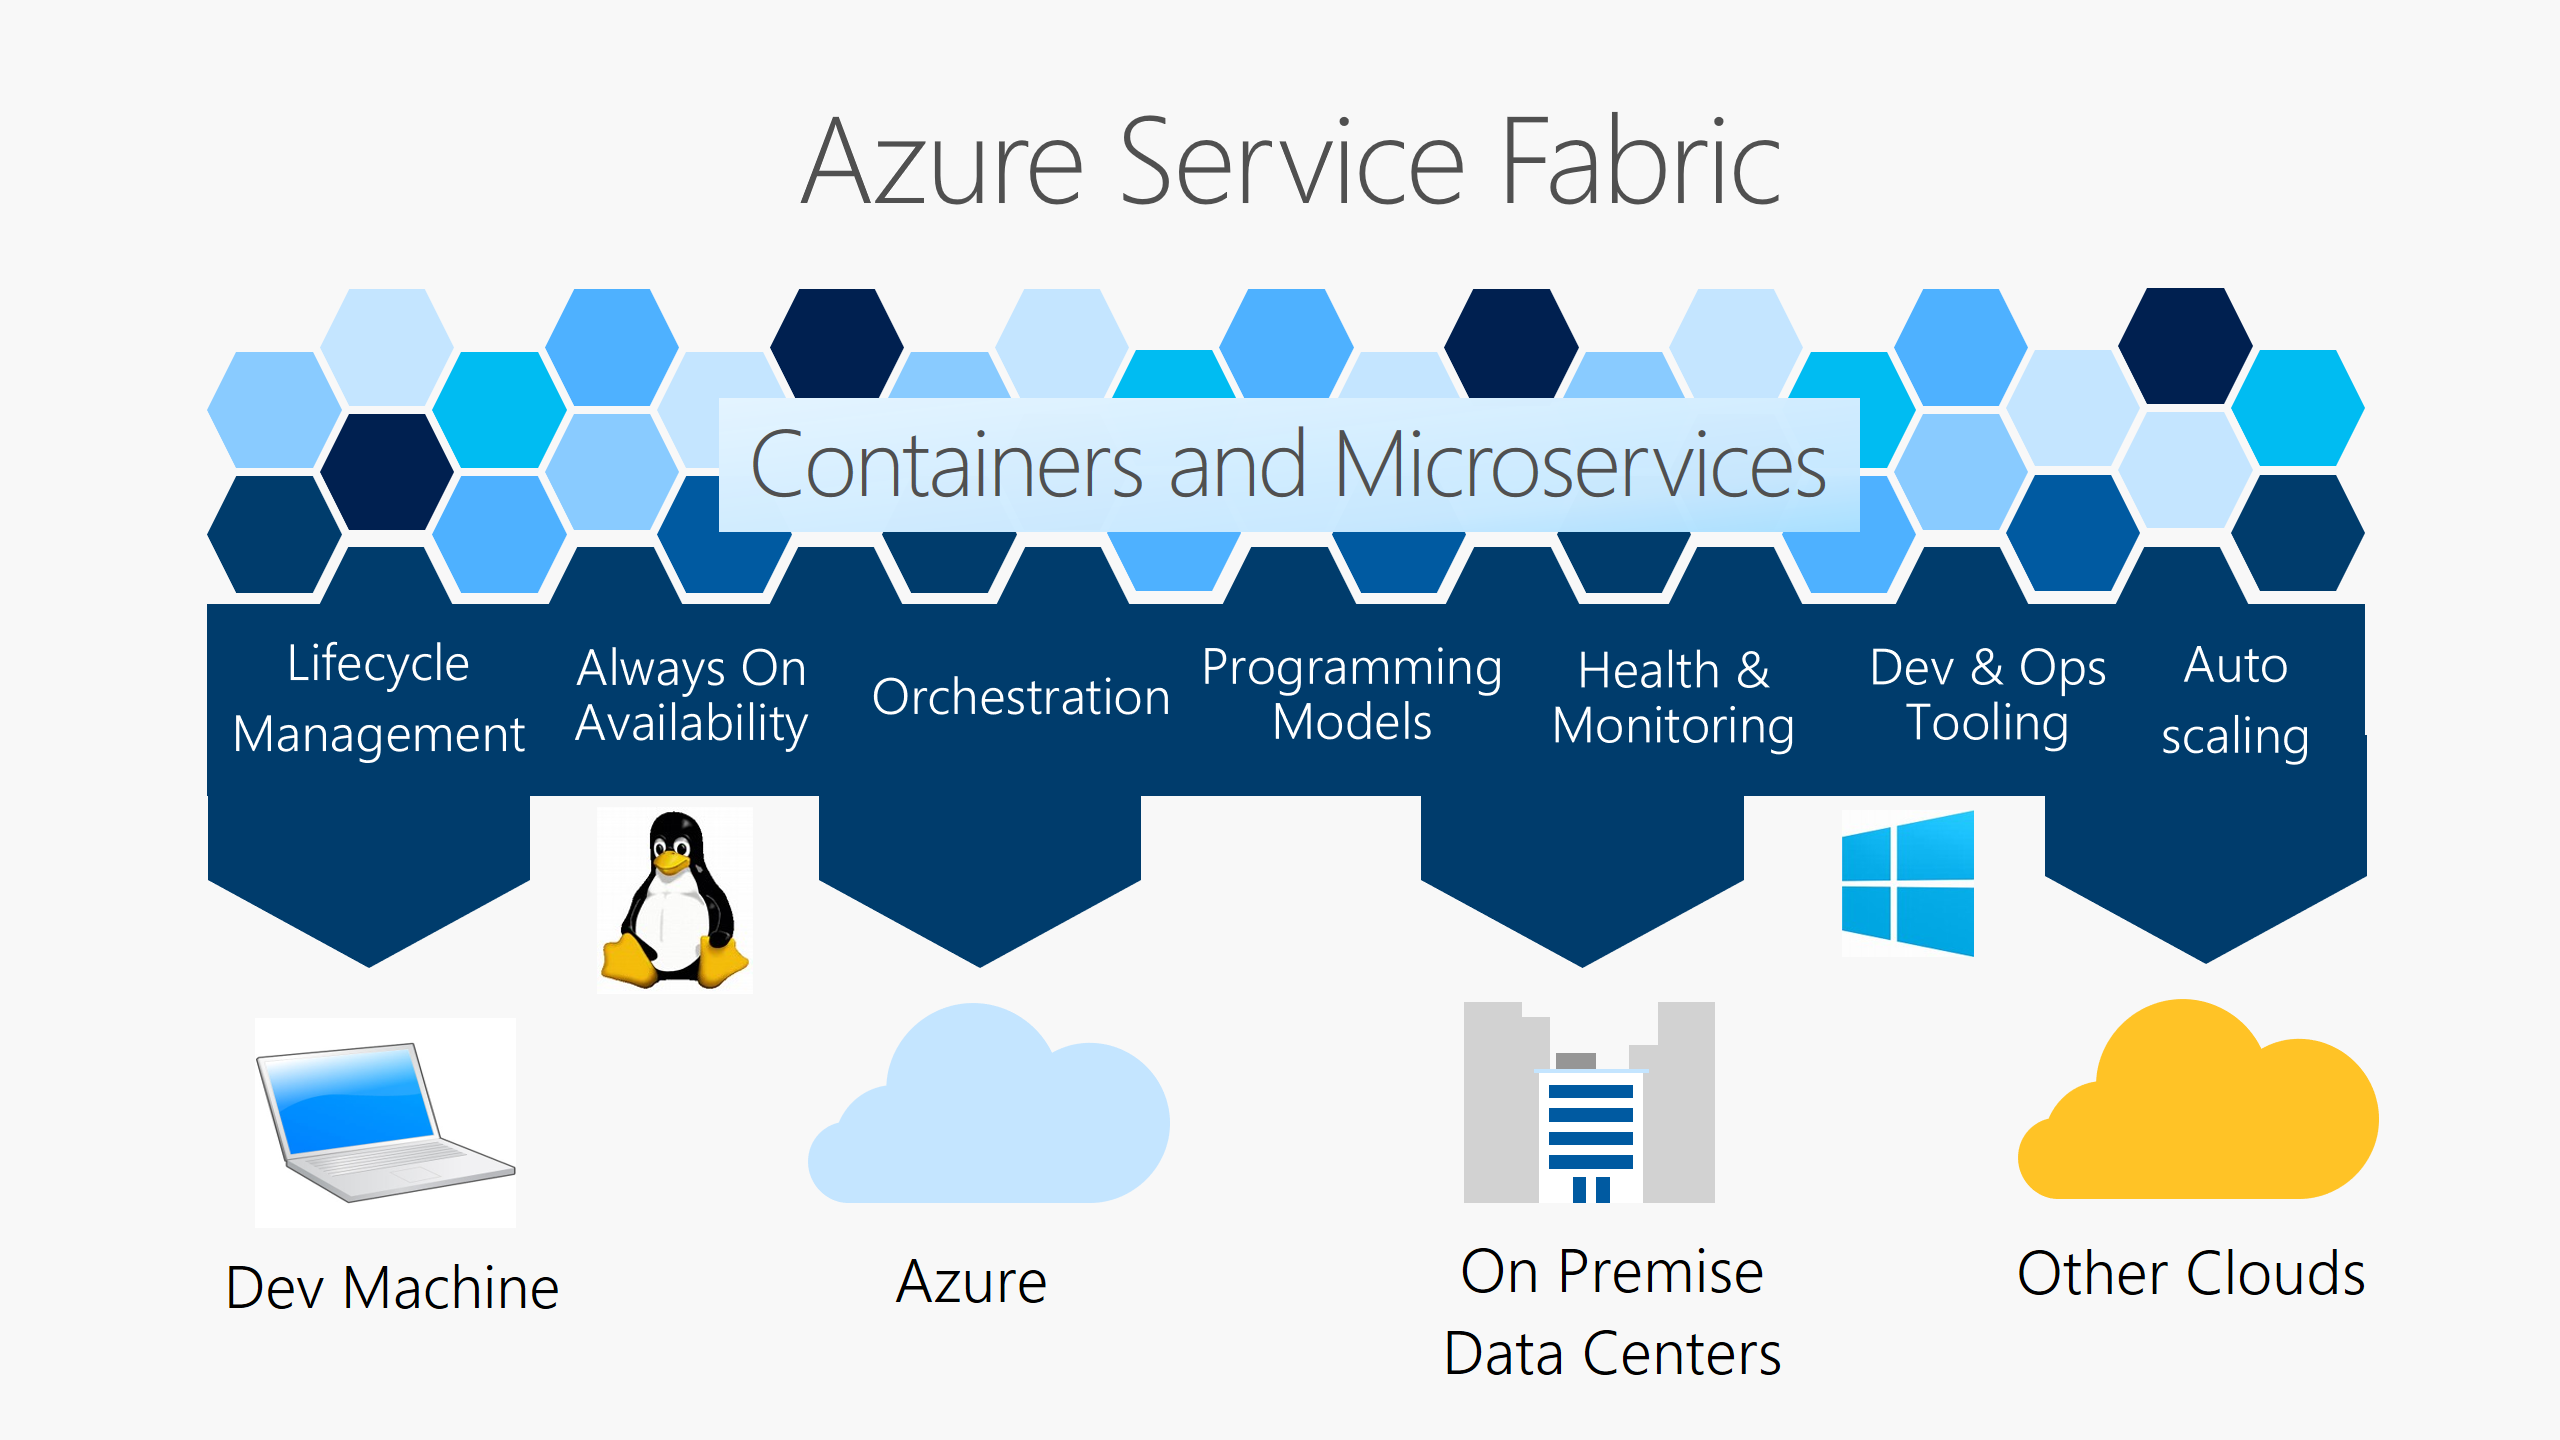 Introduction to Azure Service Fabric